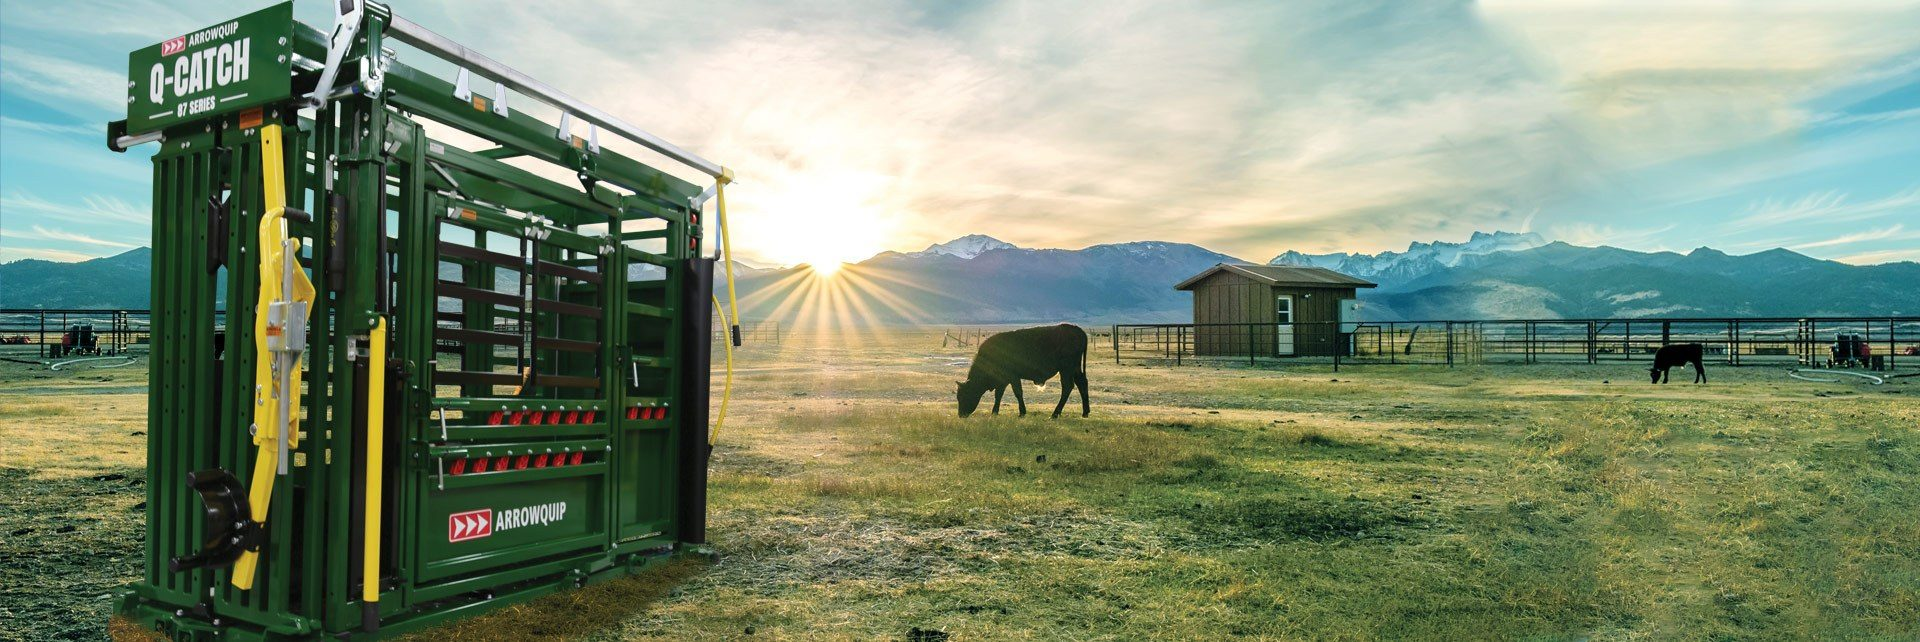 Q-Catch 87 Series cattle chute in a field with cattle